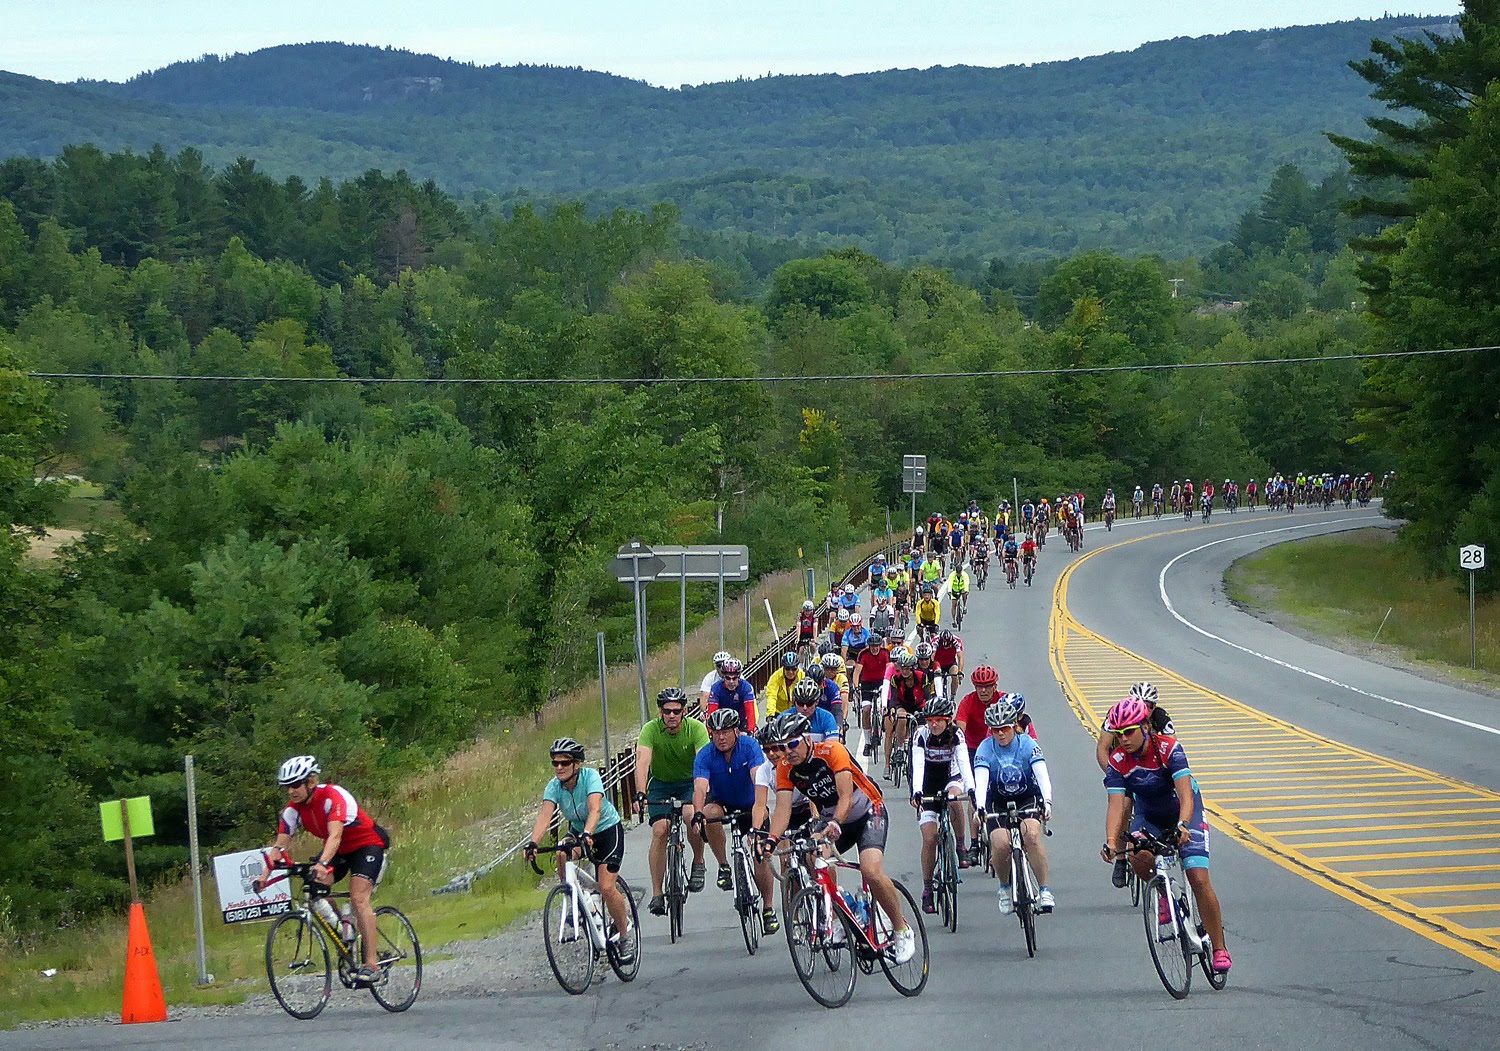 The ride leaders turn the corner from Route 28 onto Peaceful Valley Road as the 2016 Ididaride gets underway.   Copyright by Dave Kraus/ Krausgrafik.com